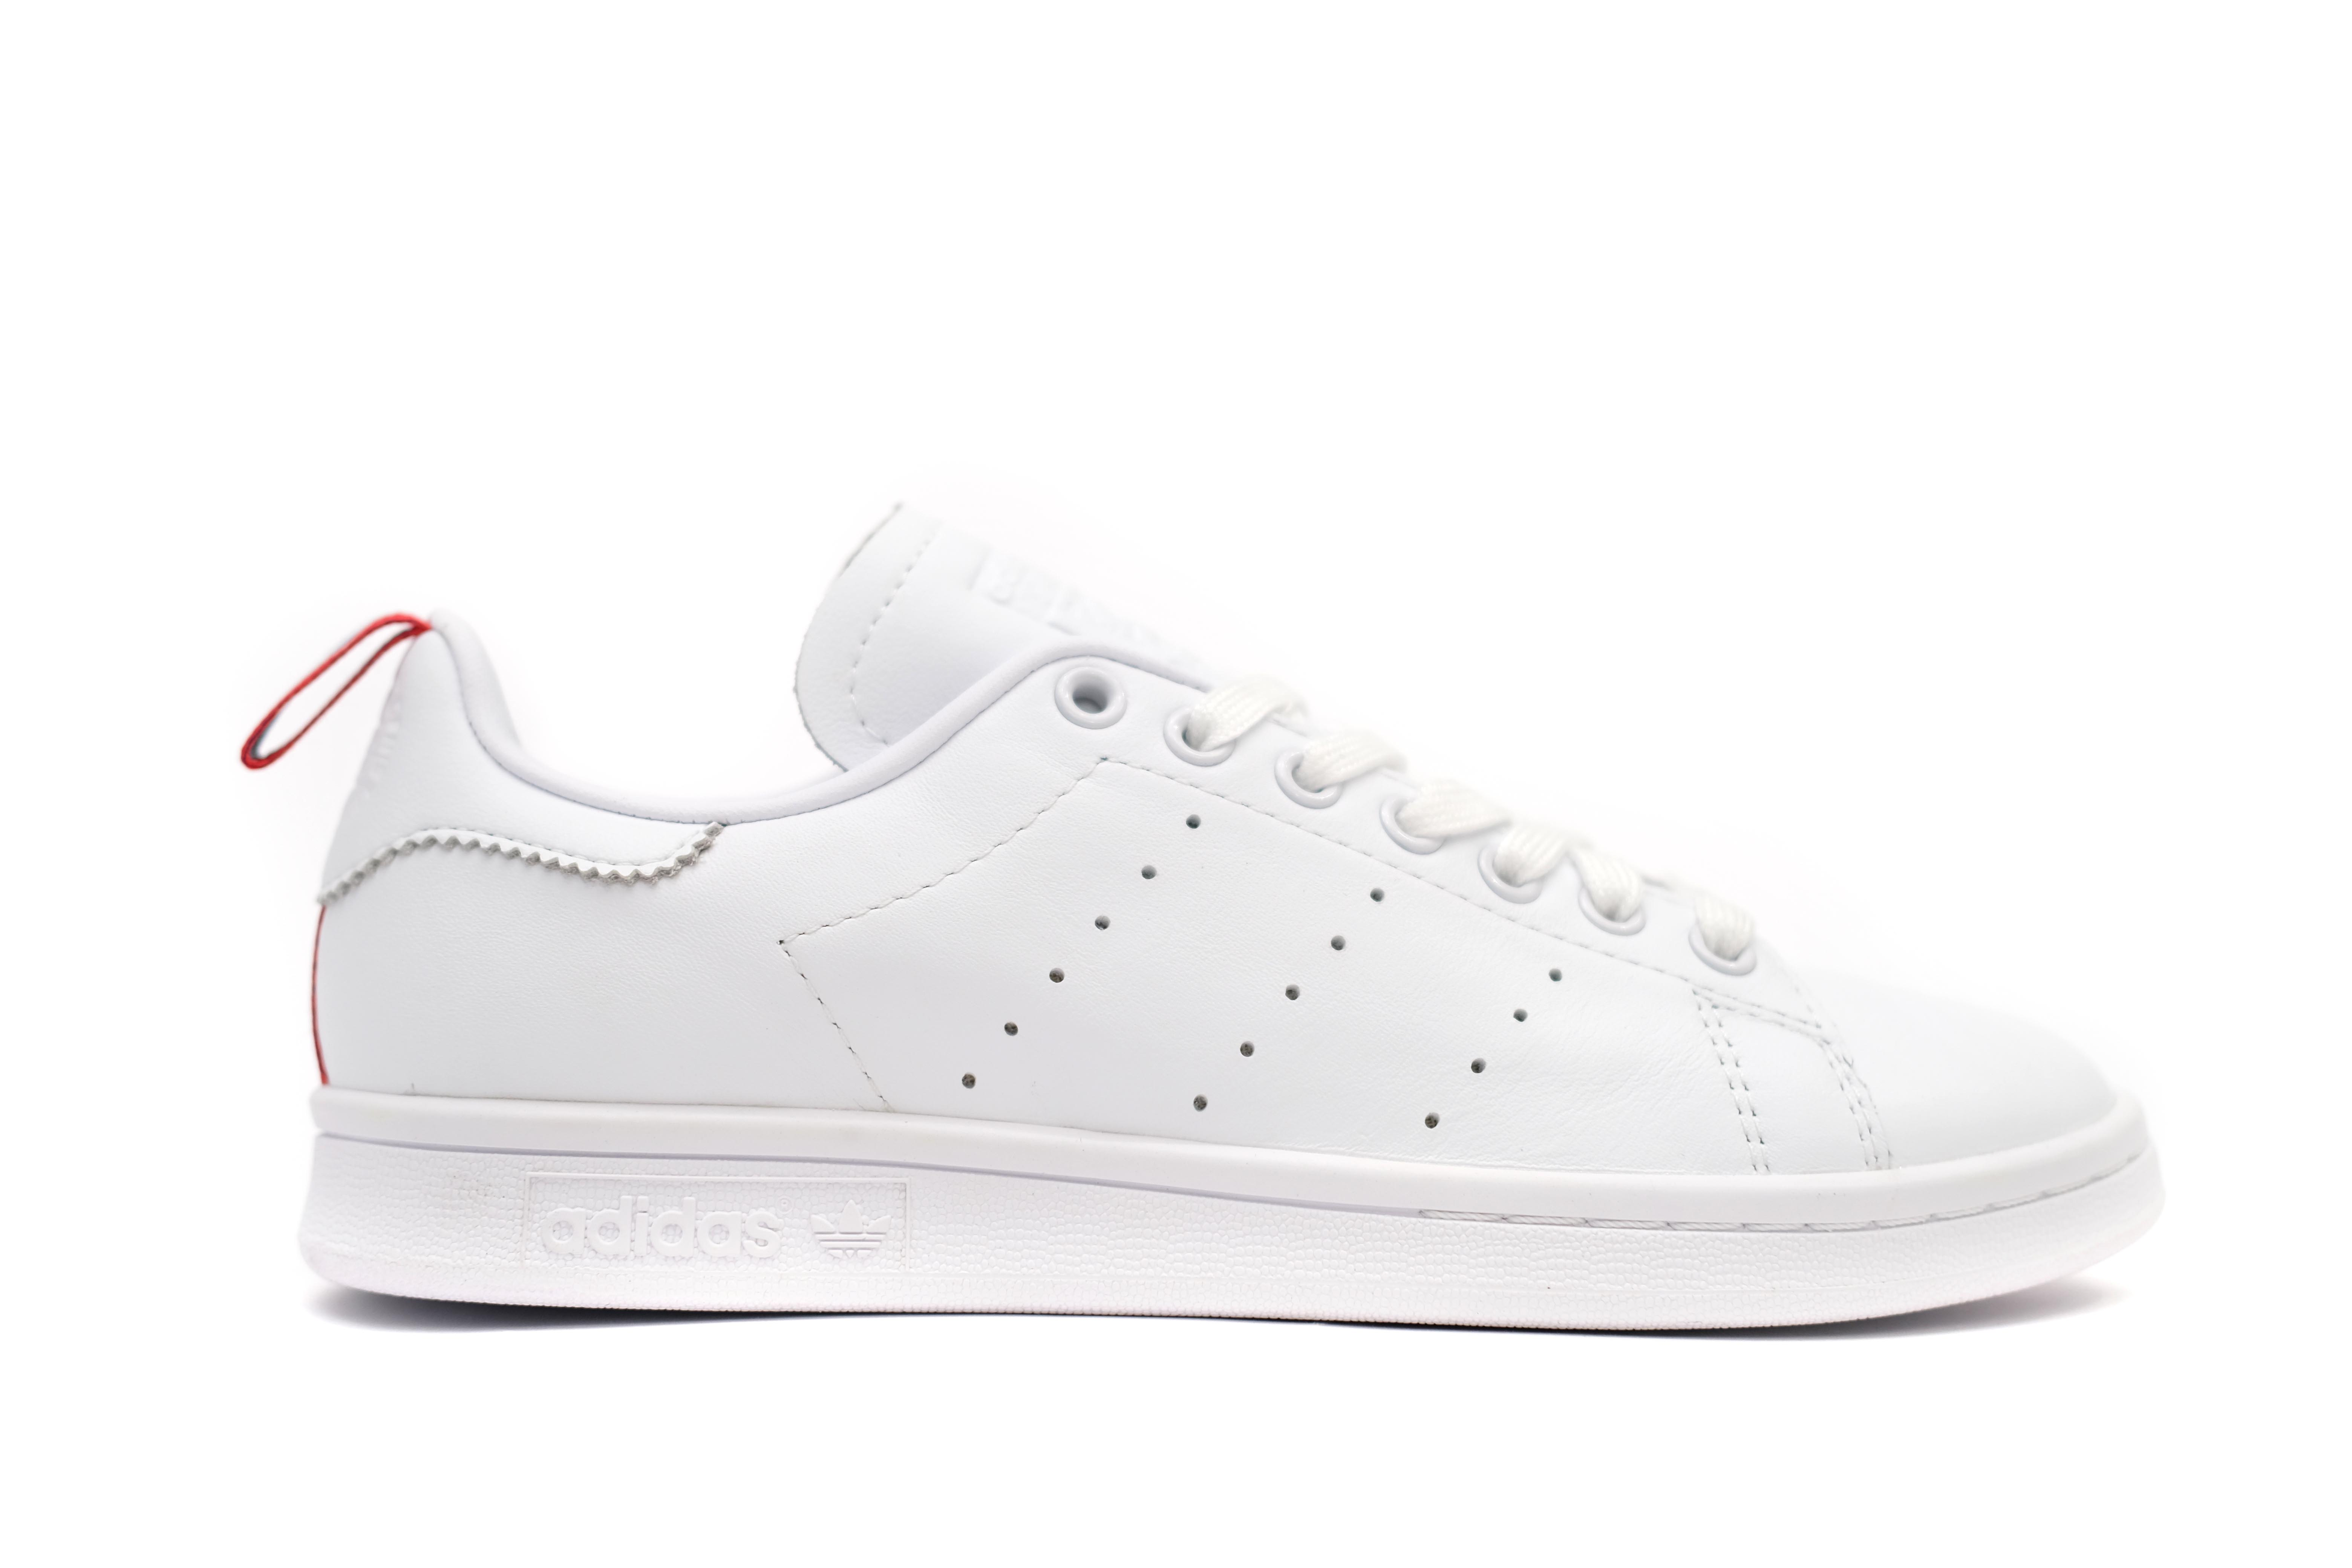 Stan Smith Appears With A New Tri-Color Heel Tab